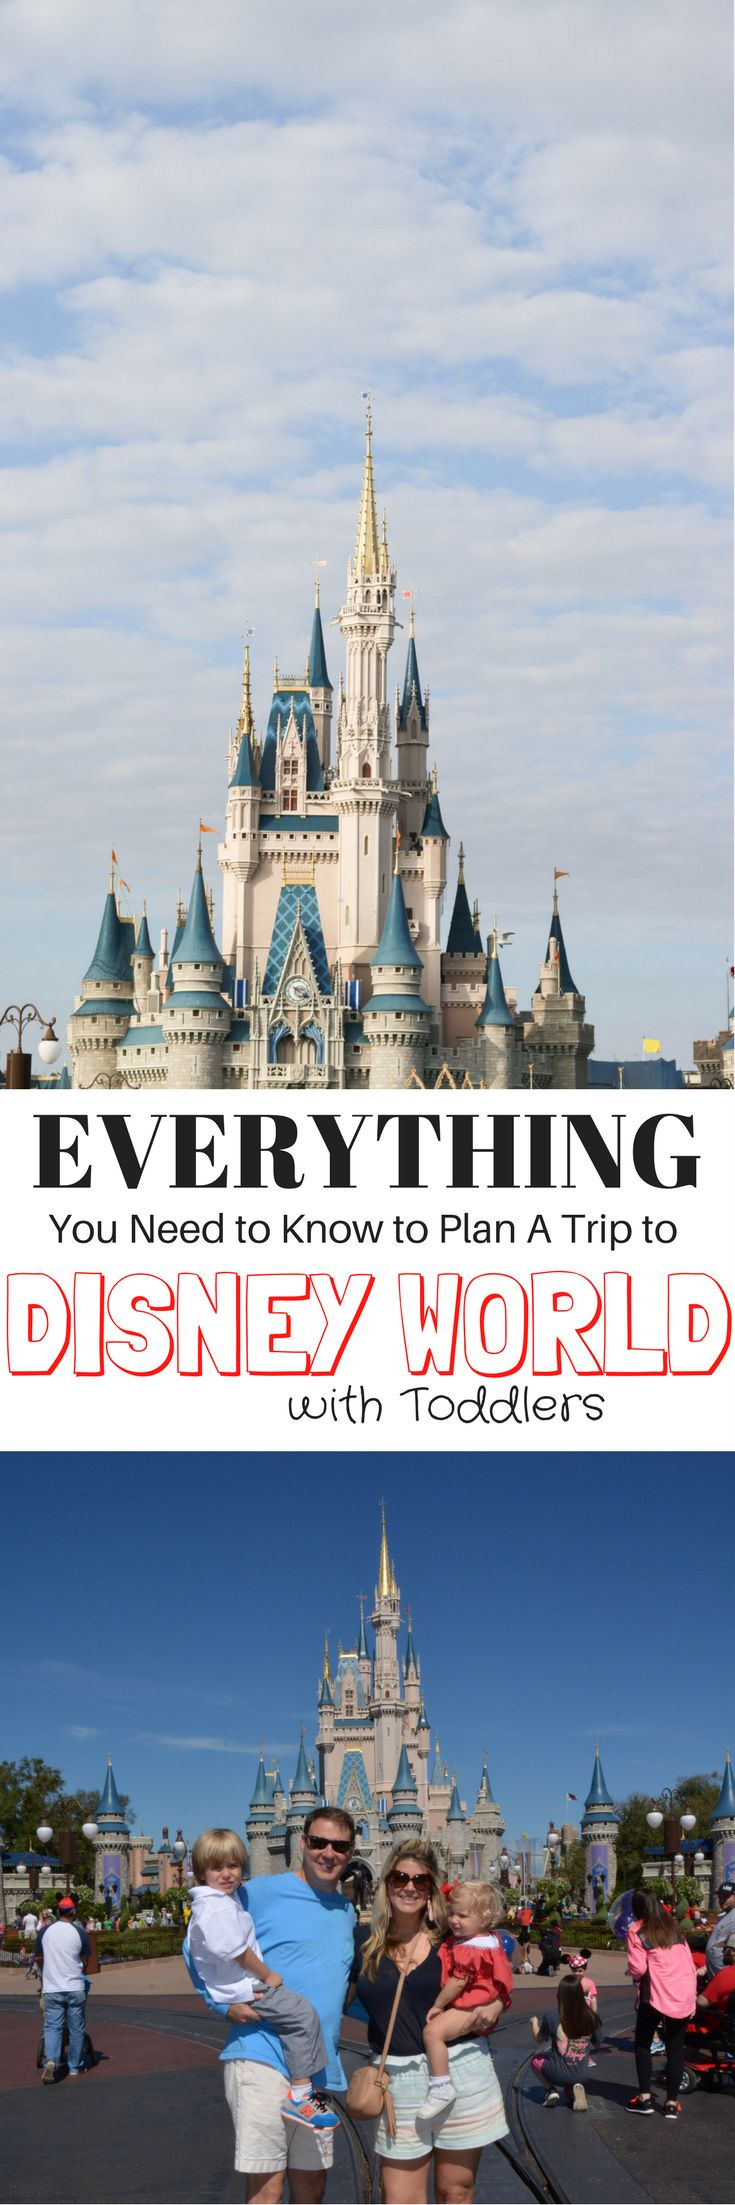 Everything You Need to Know to Plan A Trip to Disney World with Toddlers. Good stroller and babysitter tips